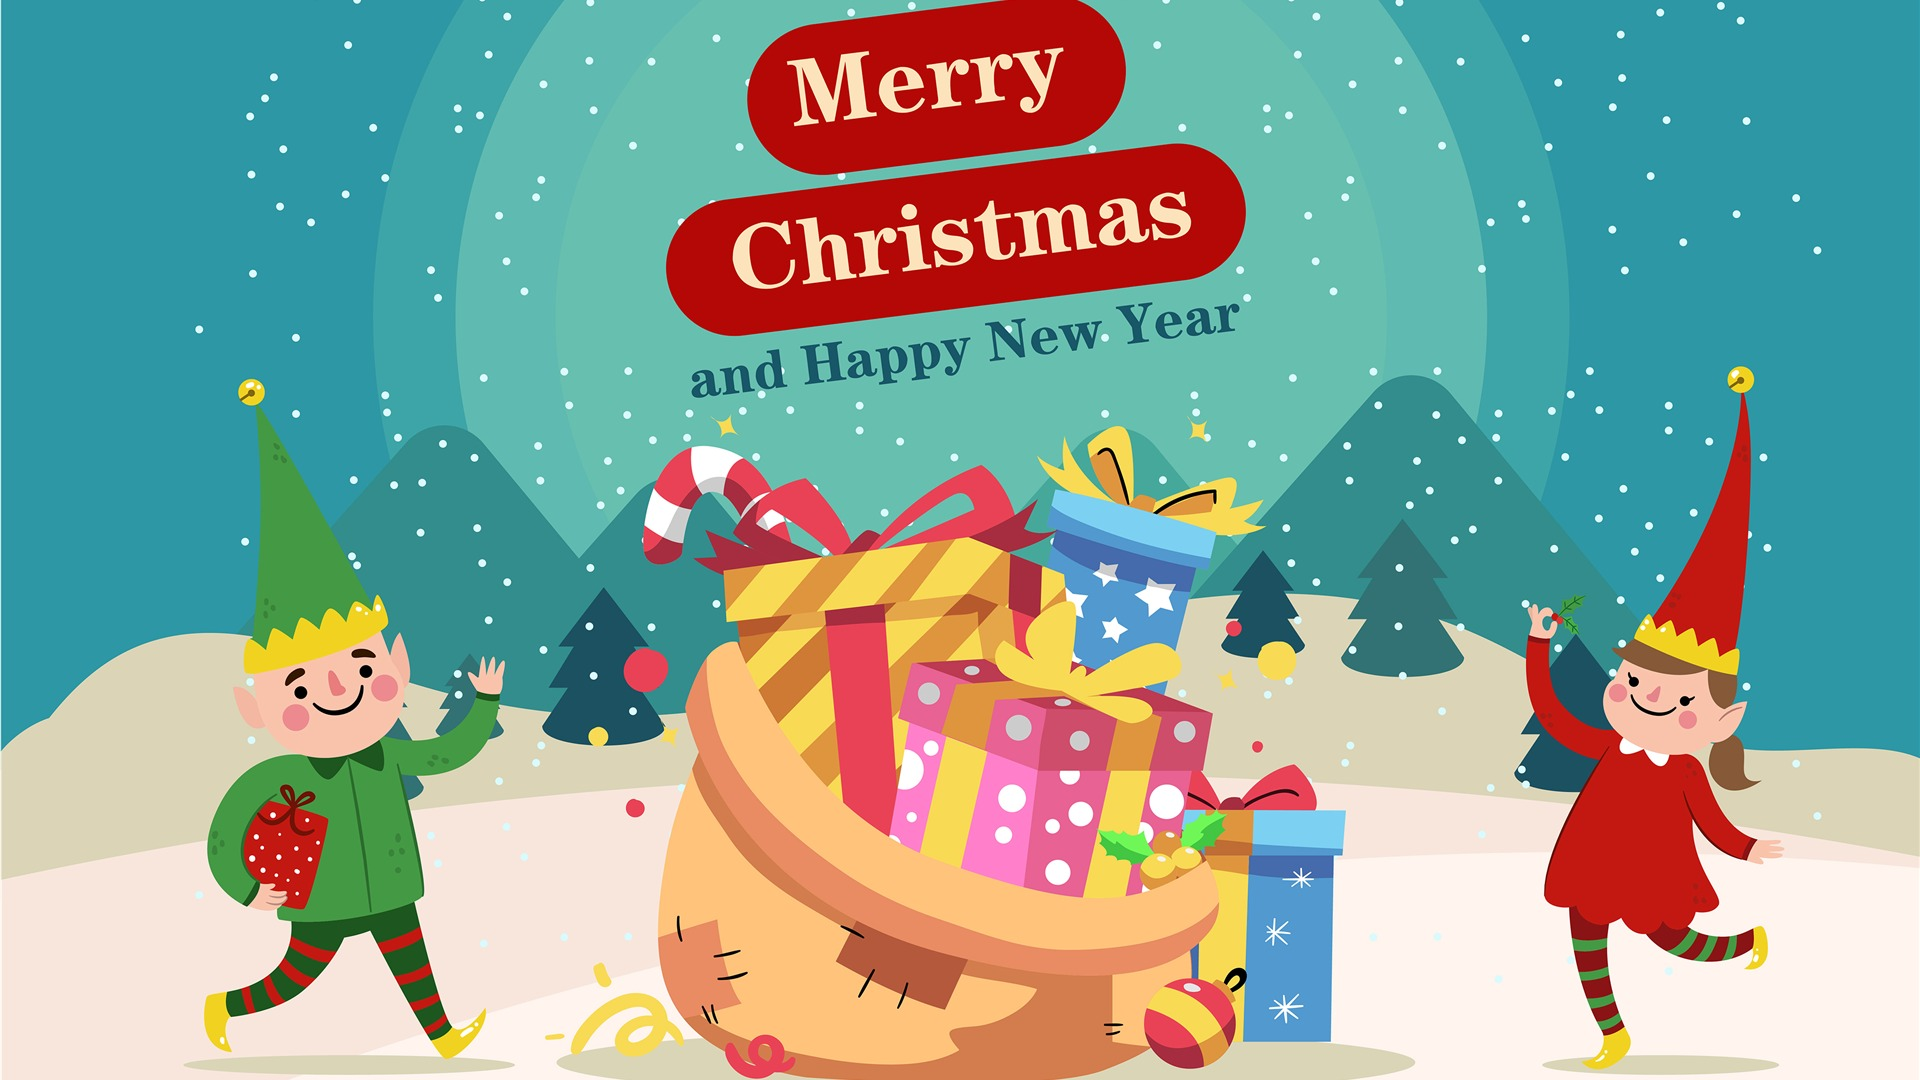 20 Merry Christmas Hd Wallpapers 1080p 2019 Collection